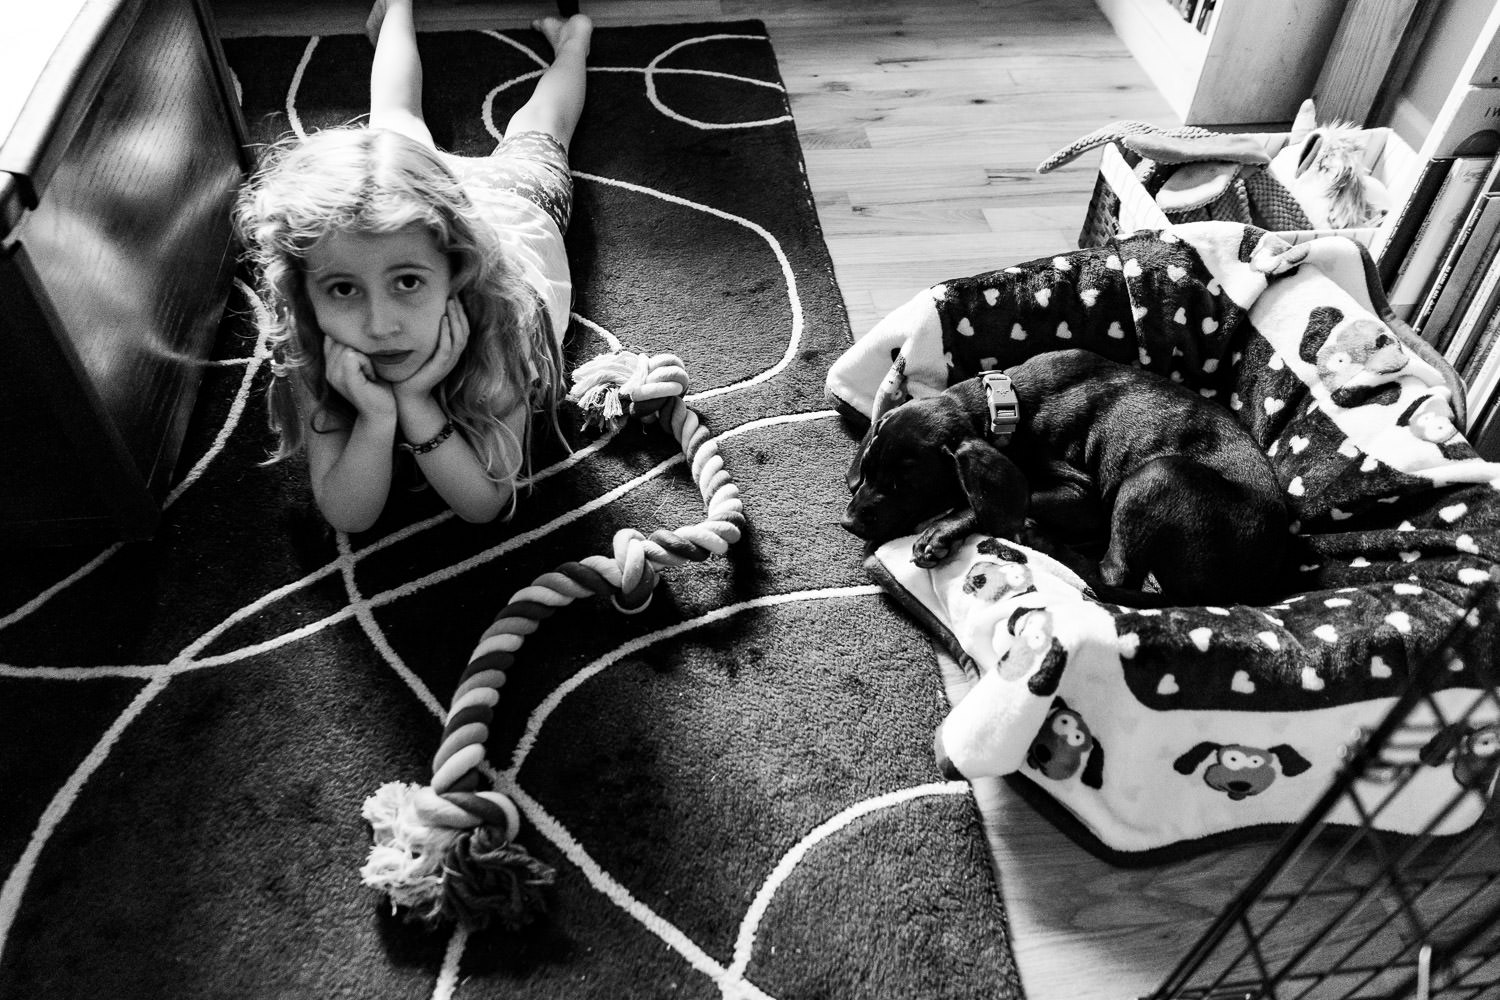 A little girl sits next to a black lab puppy in a living room.